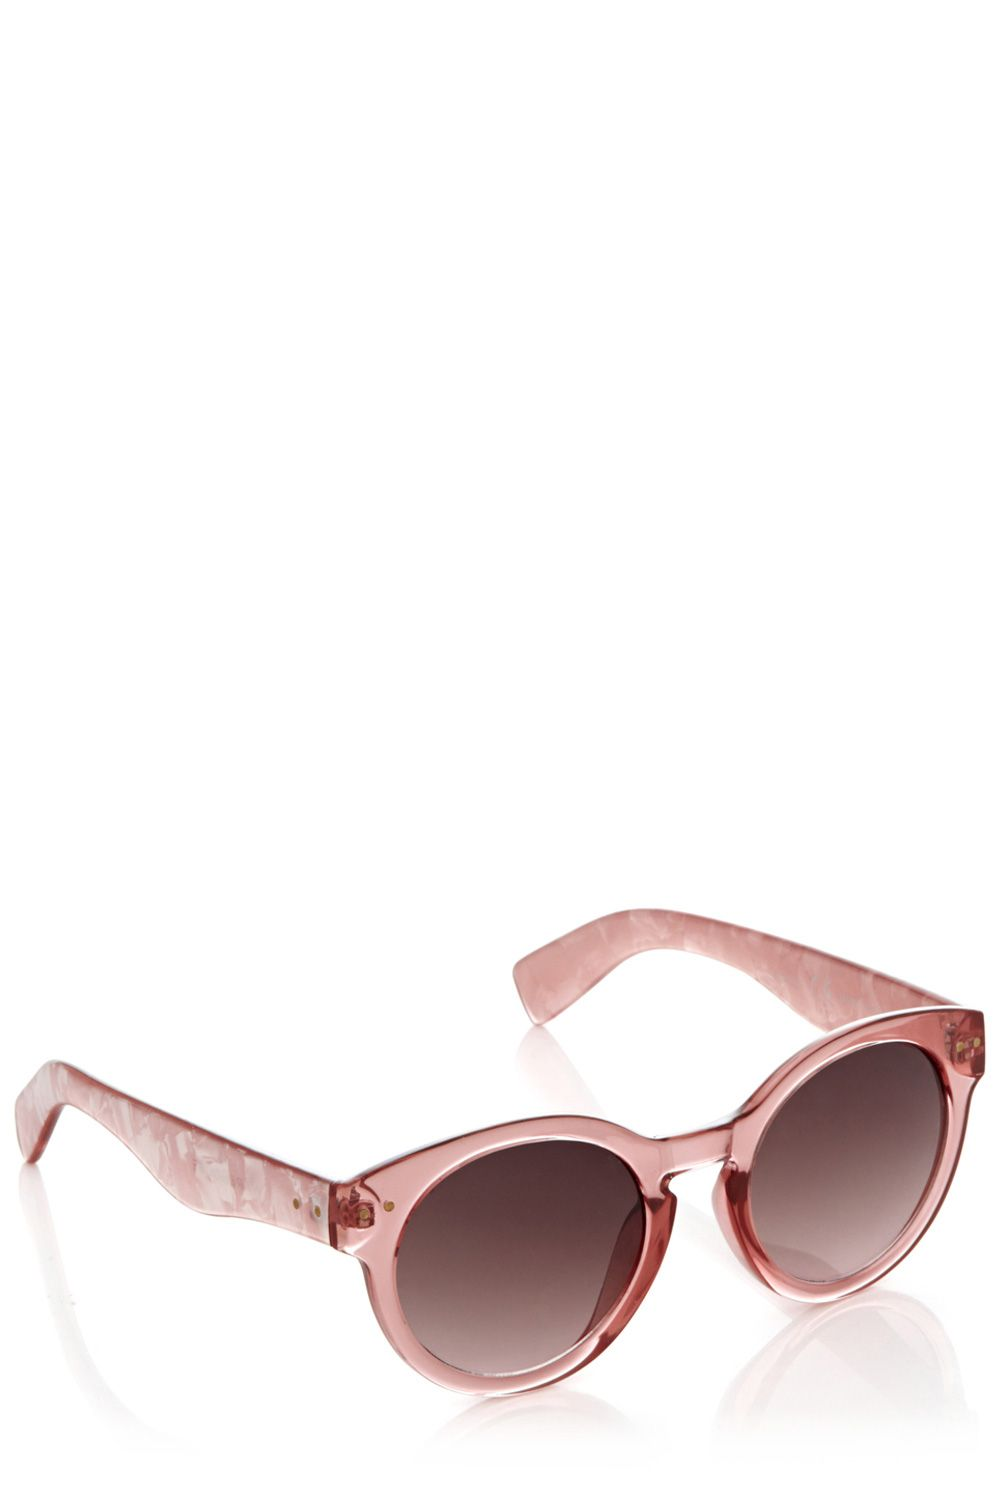 Round crystal frame sunglasses